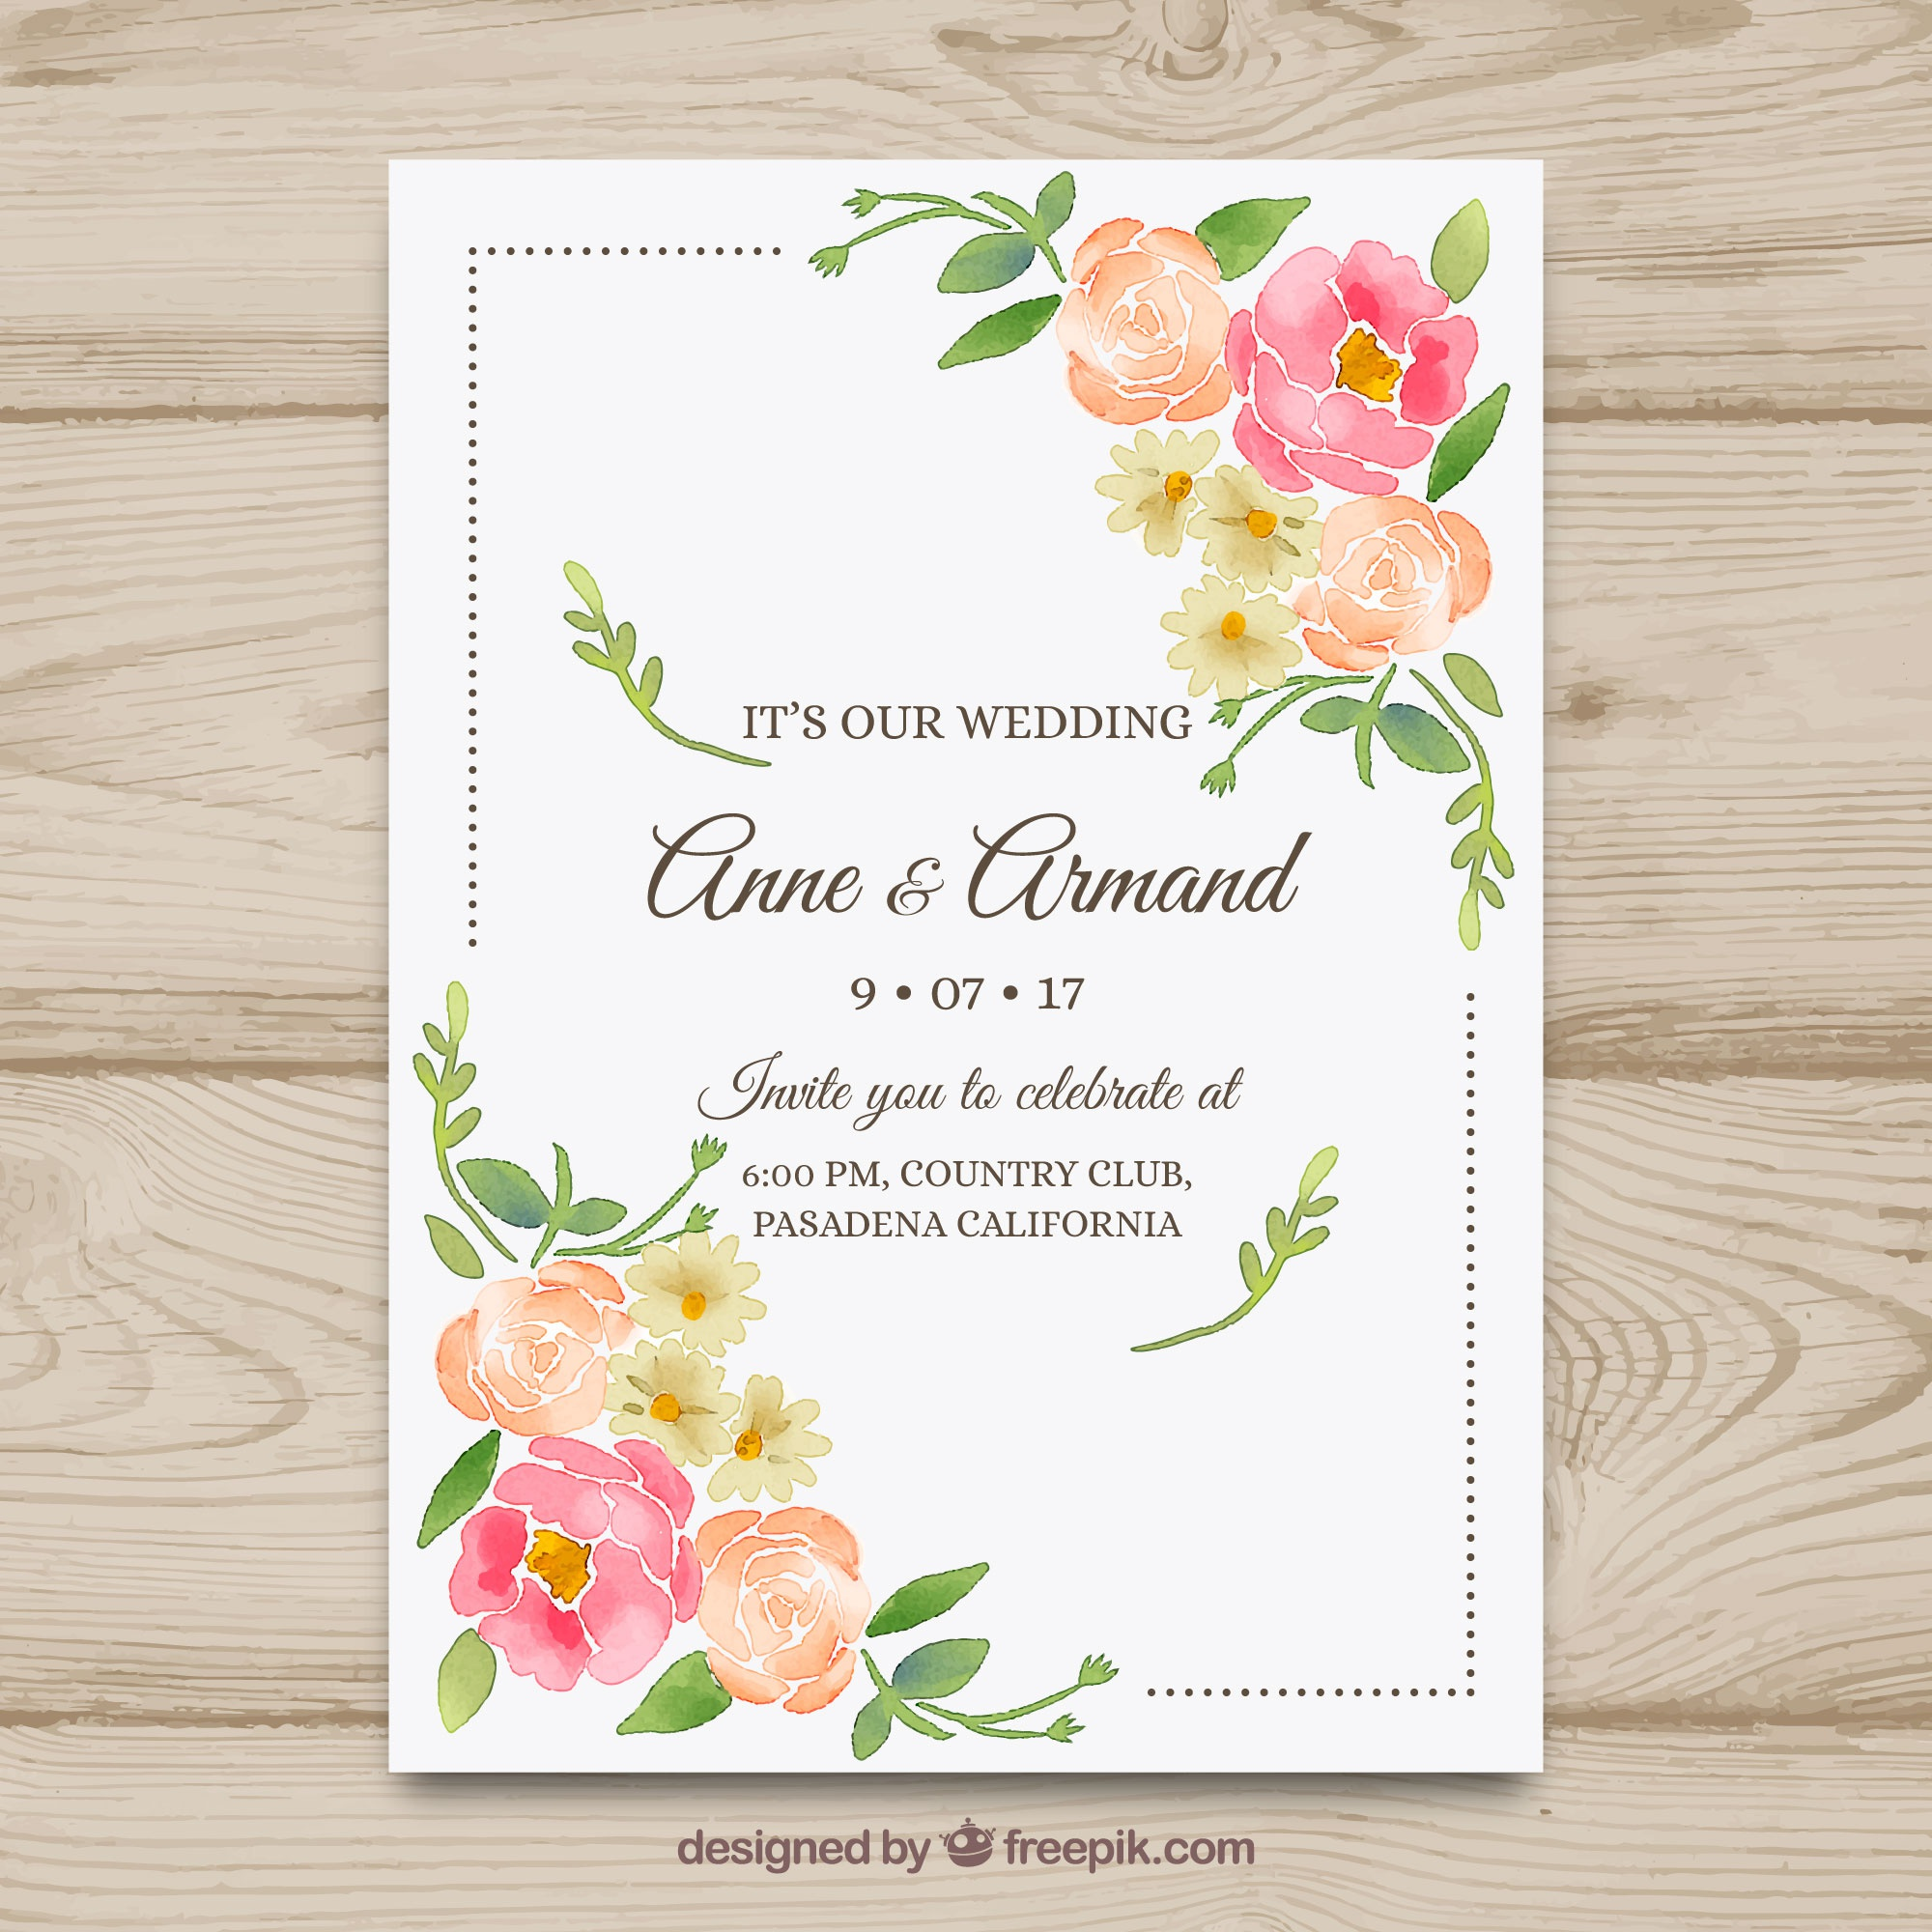 Wedding vectors 26600 free files in eps format nice hand drawn wedding invitation with flowers stopboris